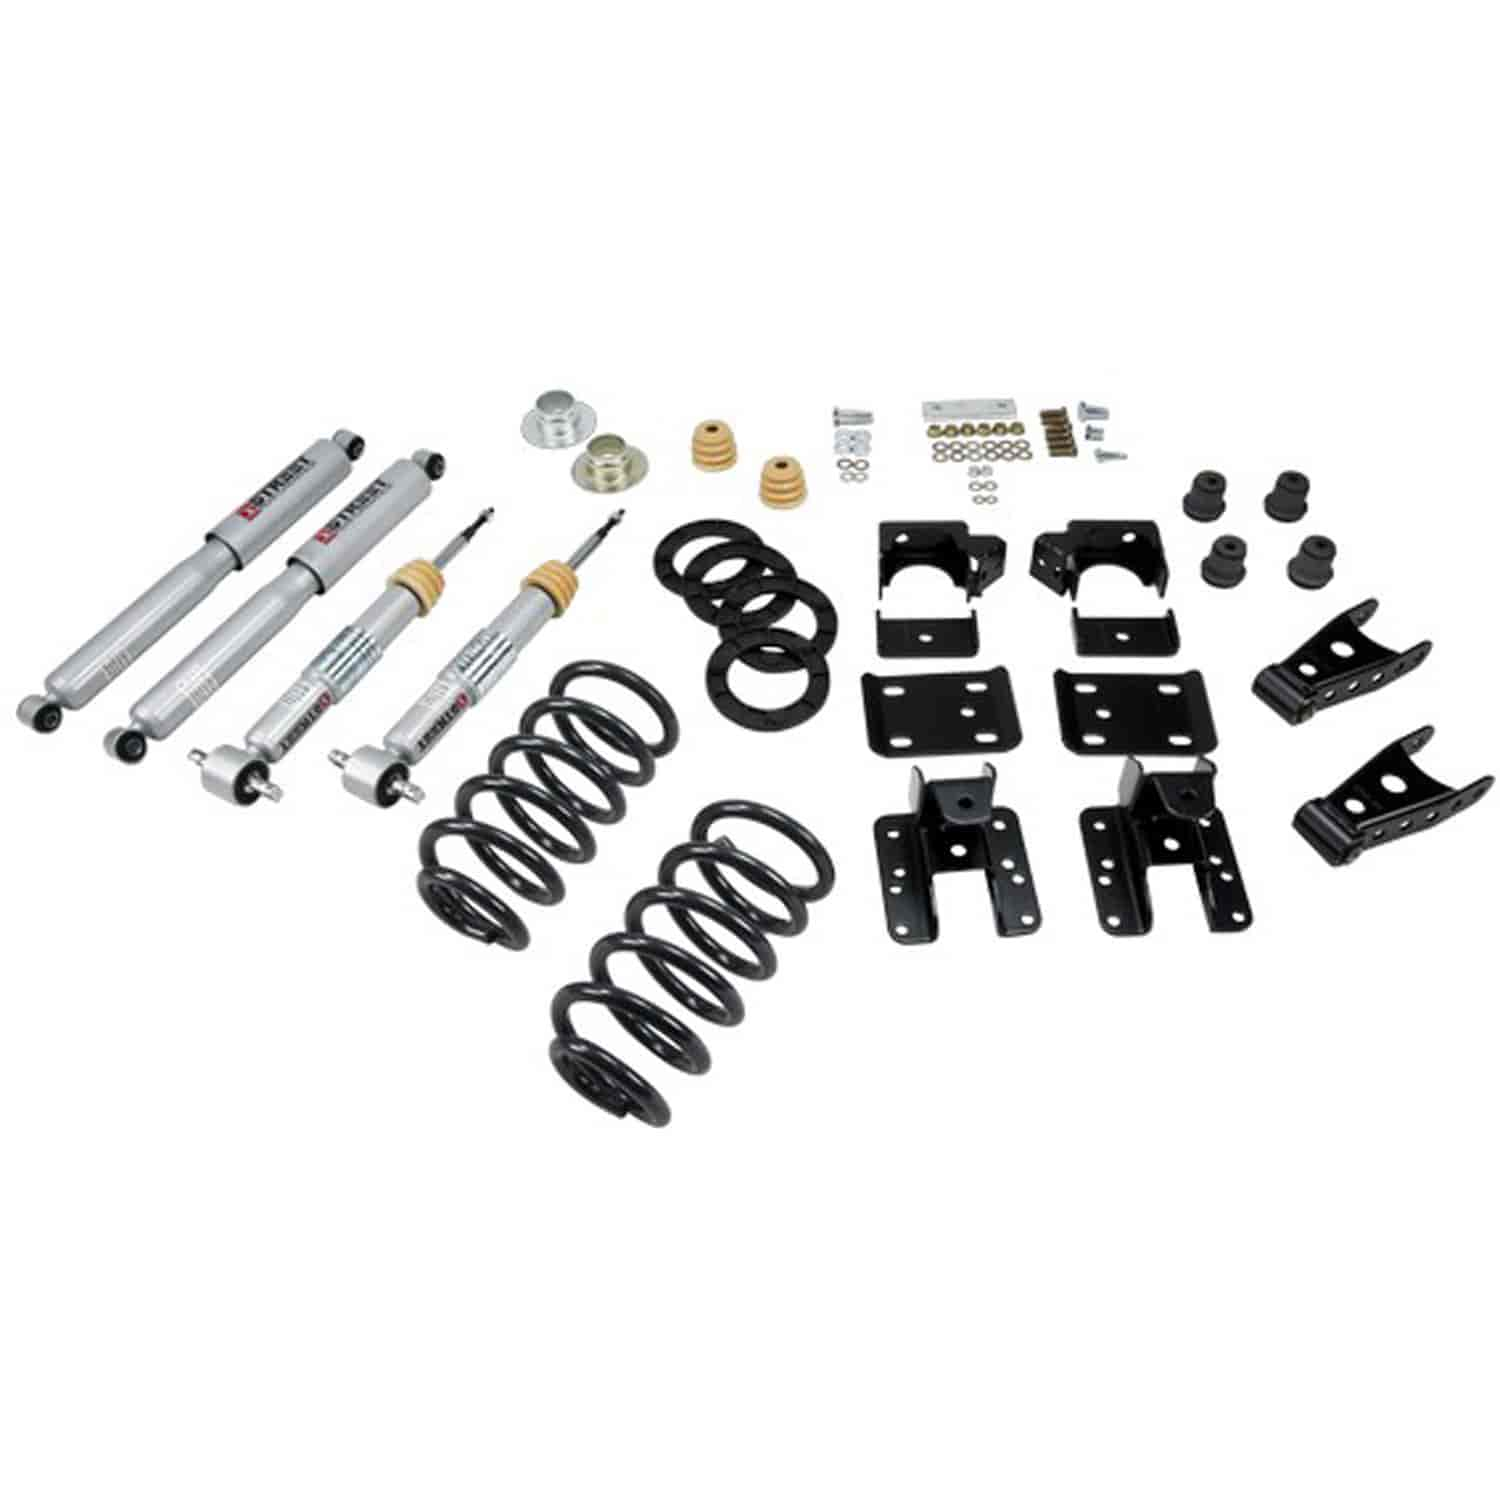 Belltech 642sp Complete Lowering Kit For Chevy